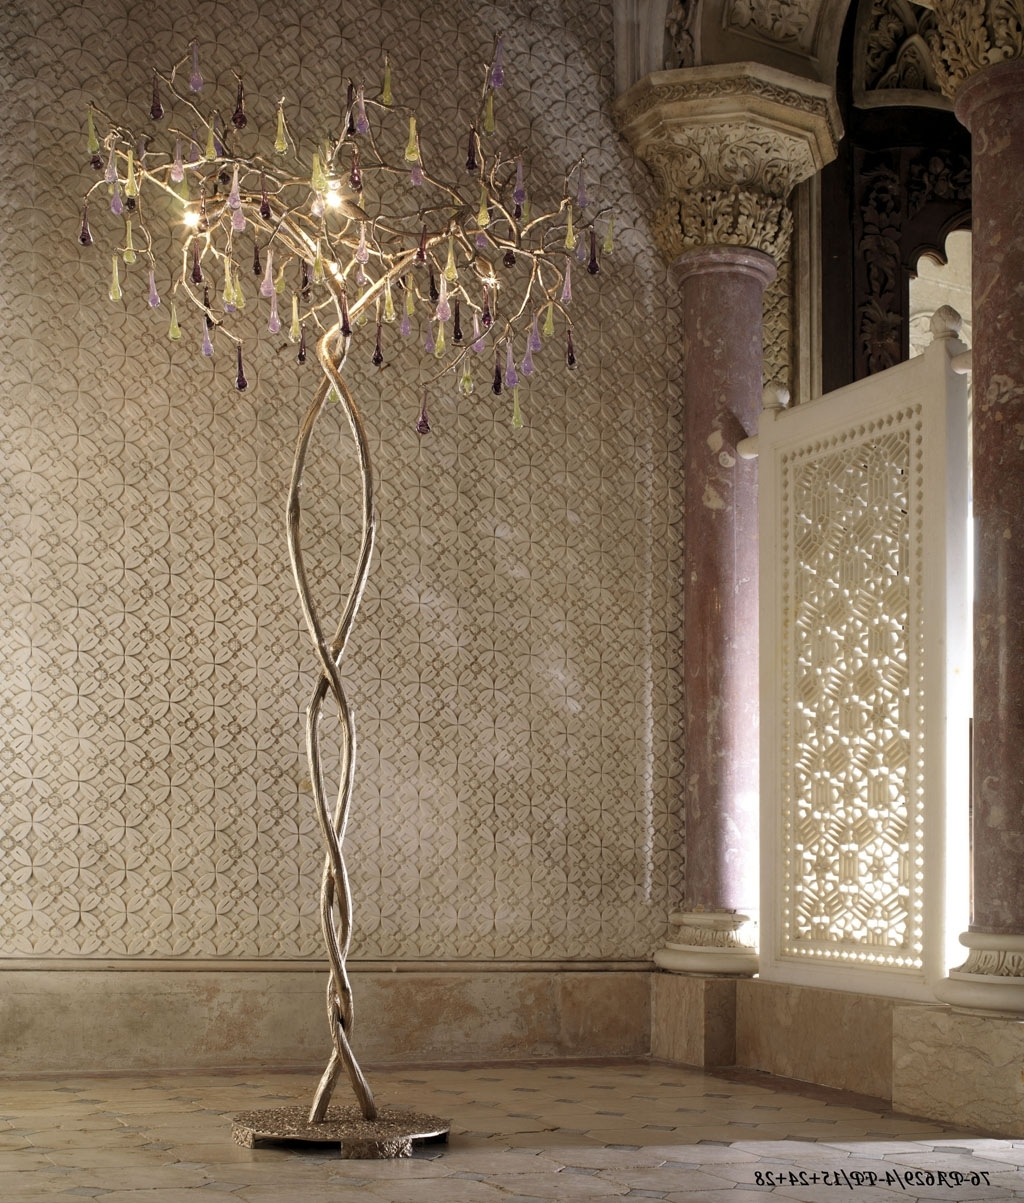 Preferred Serip Of Portugal Recently Had Their Bijout Chandelier Selected With Regard To Tall Standing Chandelier Lamps (View 4 of 15)